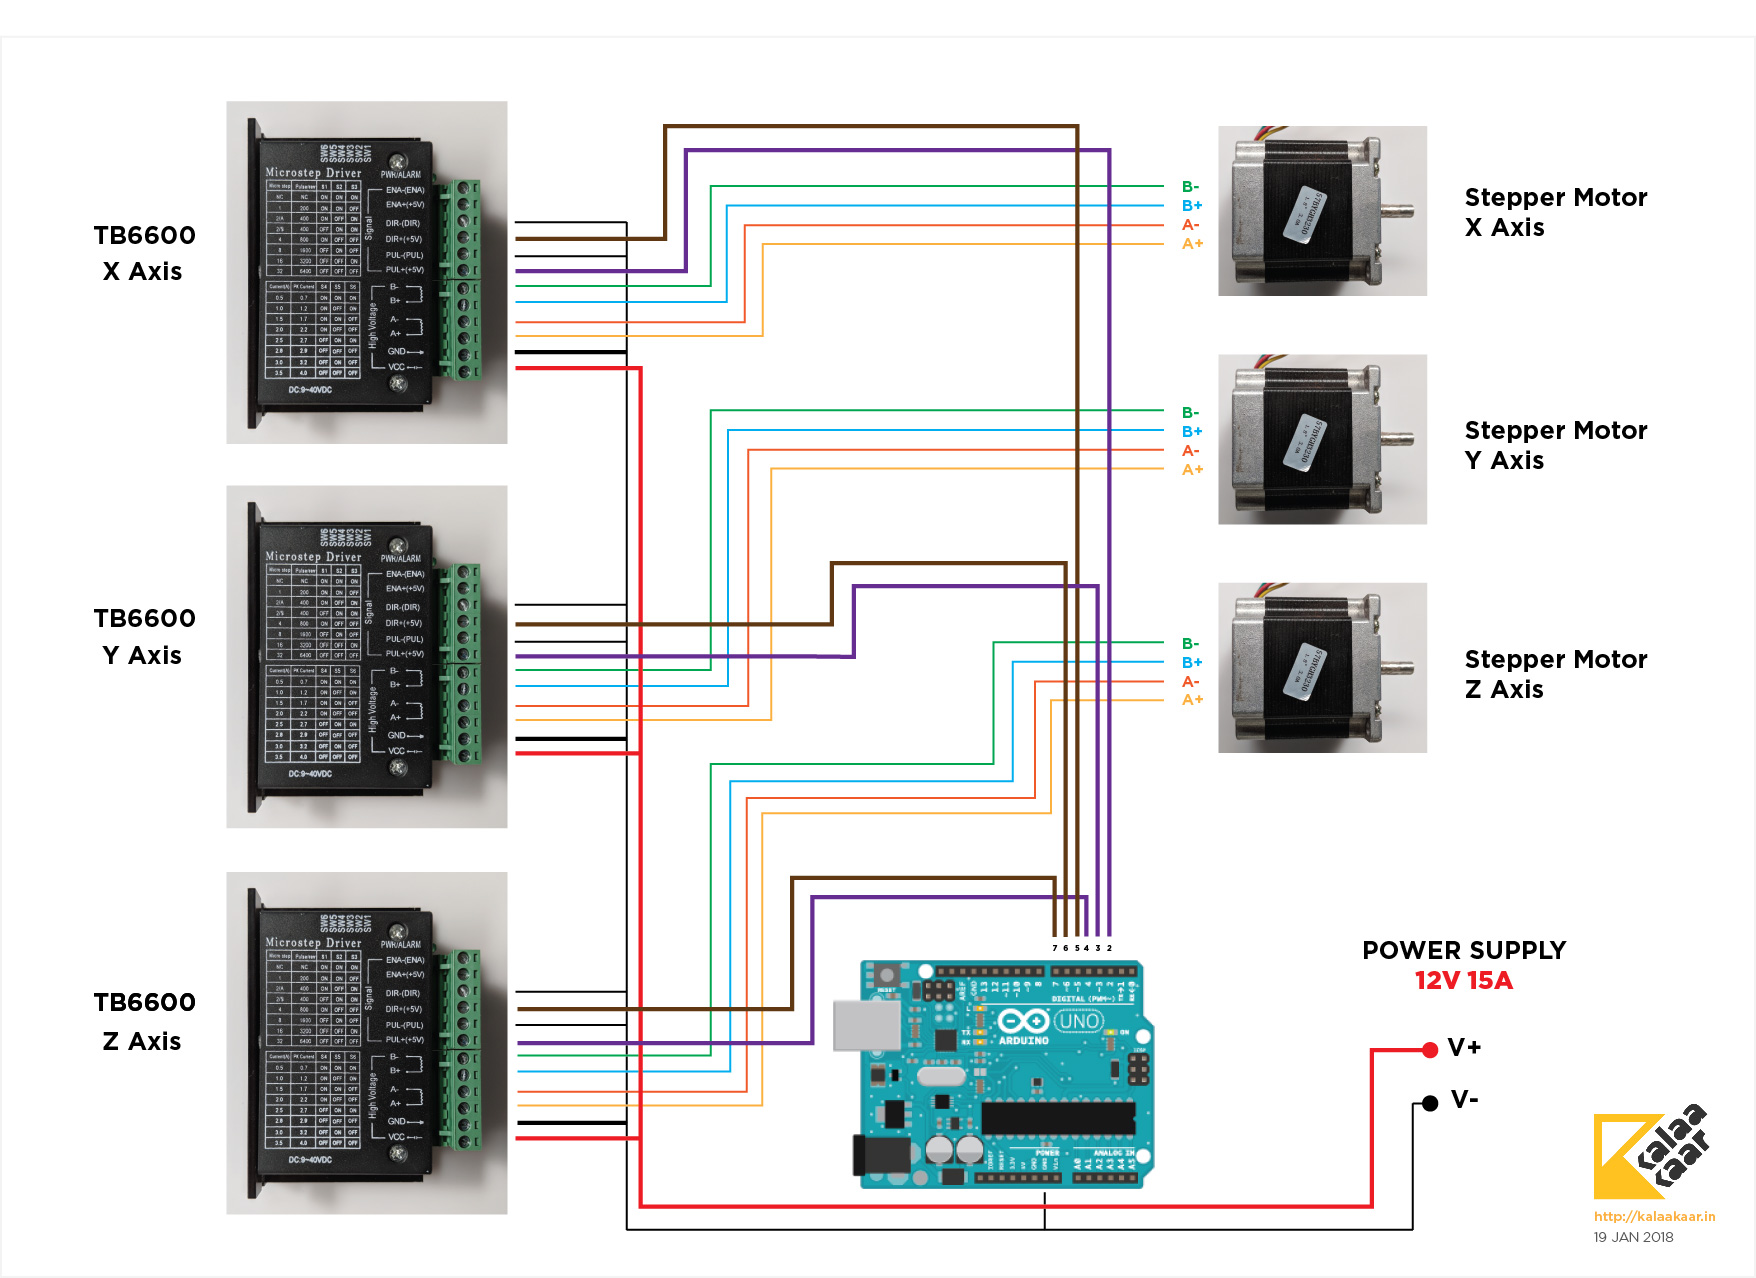 Wiring Diagram For Computer Power Supply Guide And Troubleshooting Pc Atx Schematic Cnc Controller With Arduino Tb6600 Grbl Kalaakaar Makerspace Pin